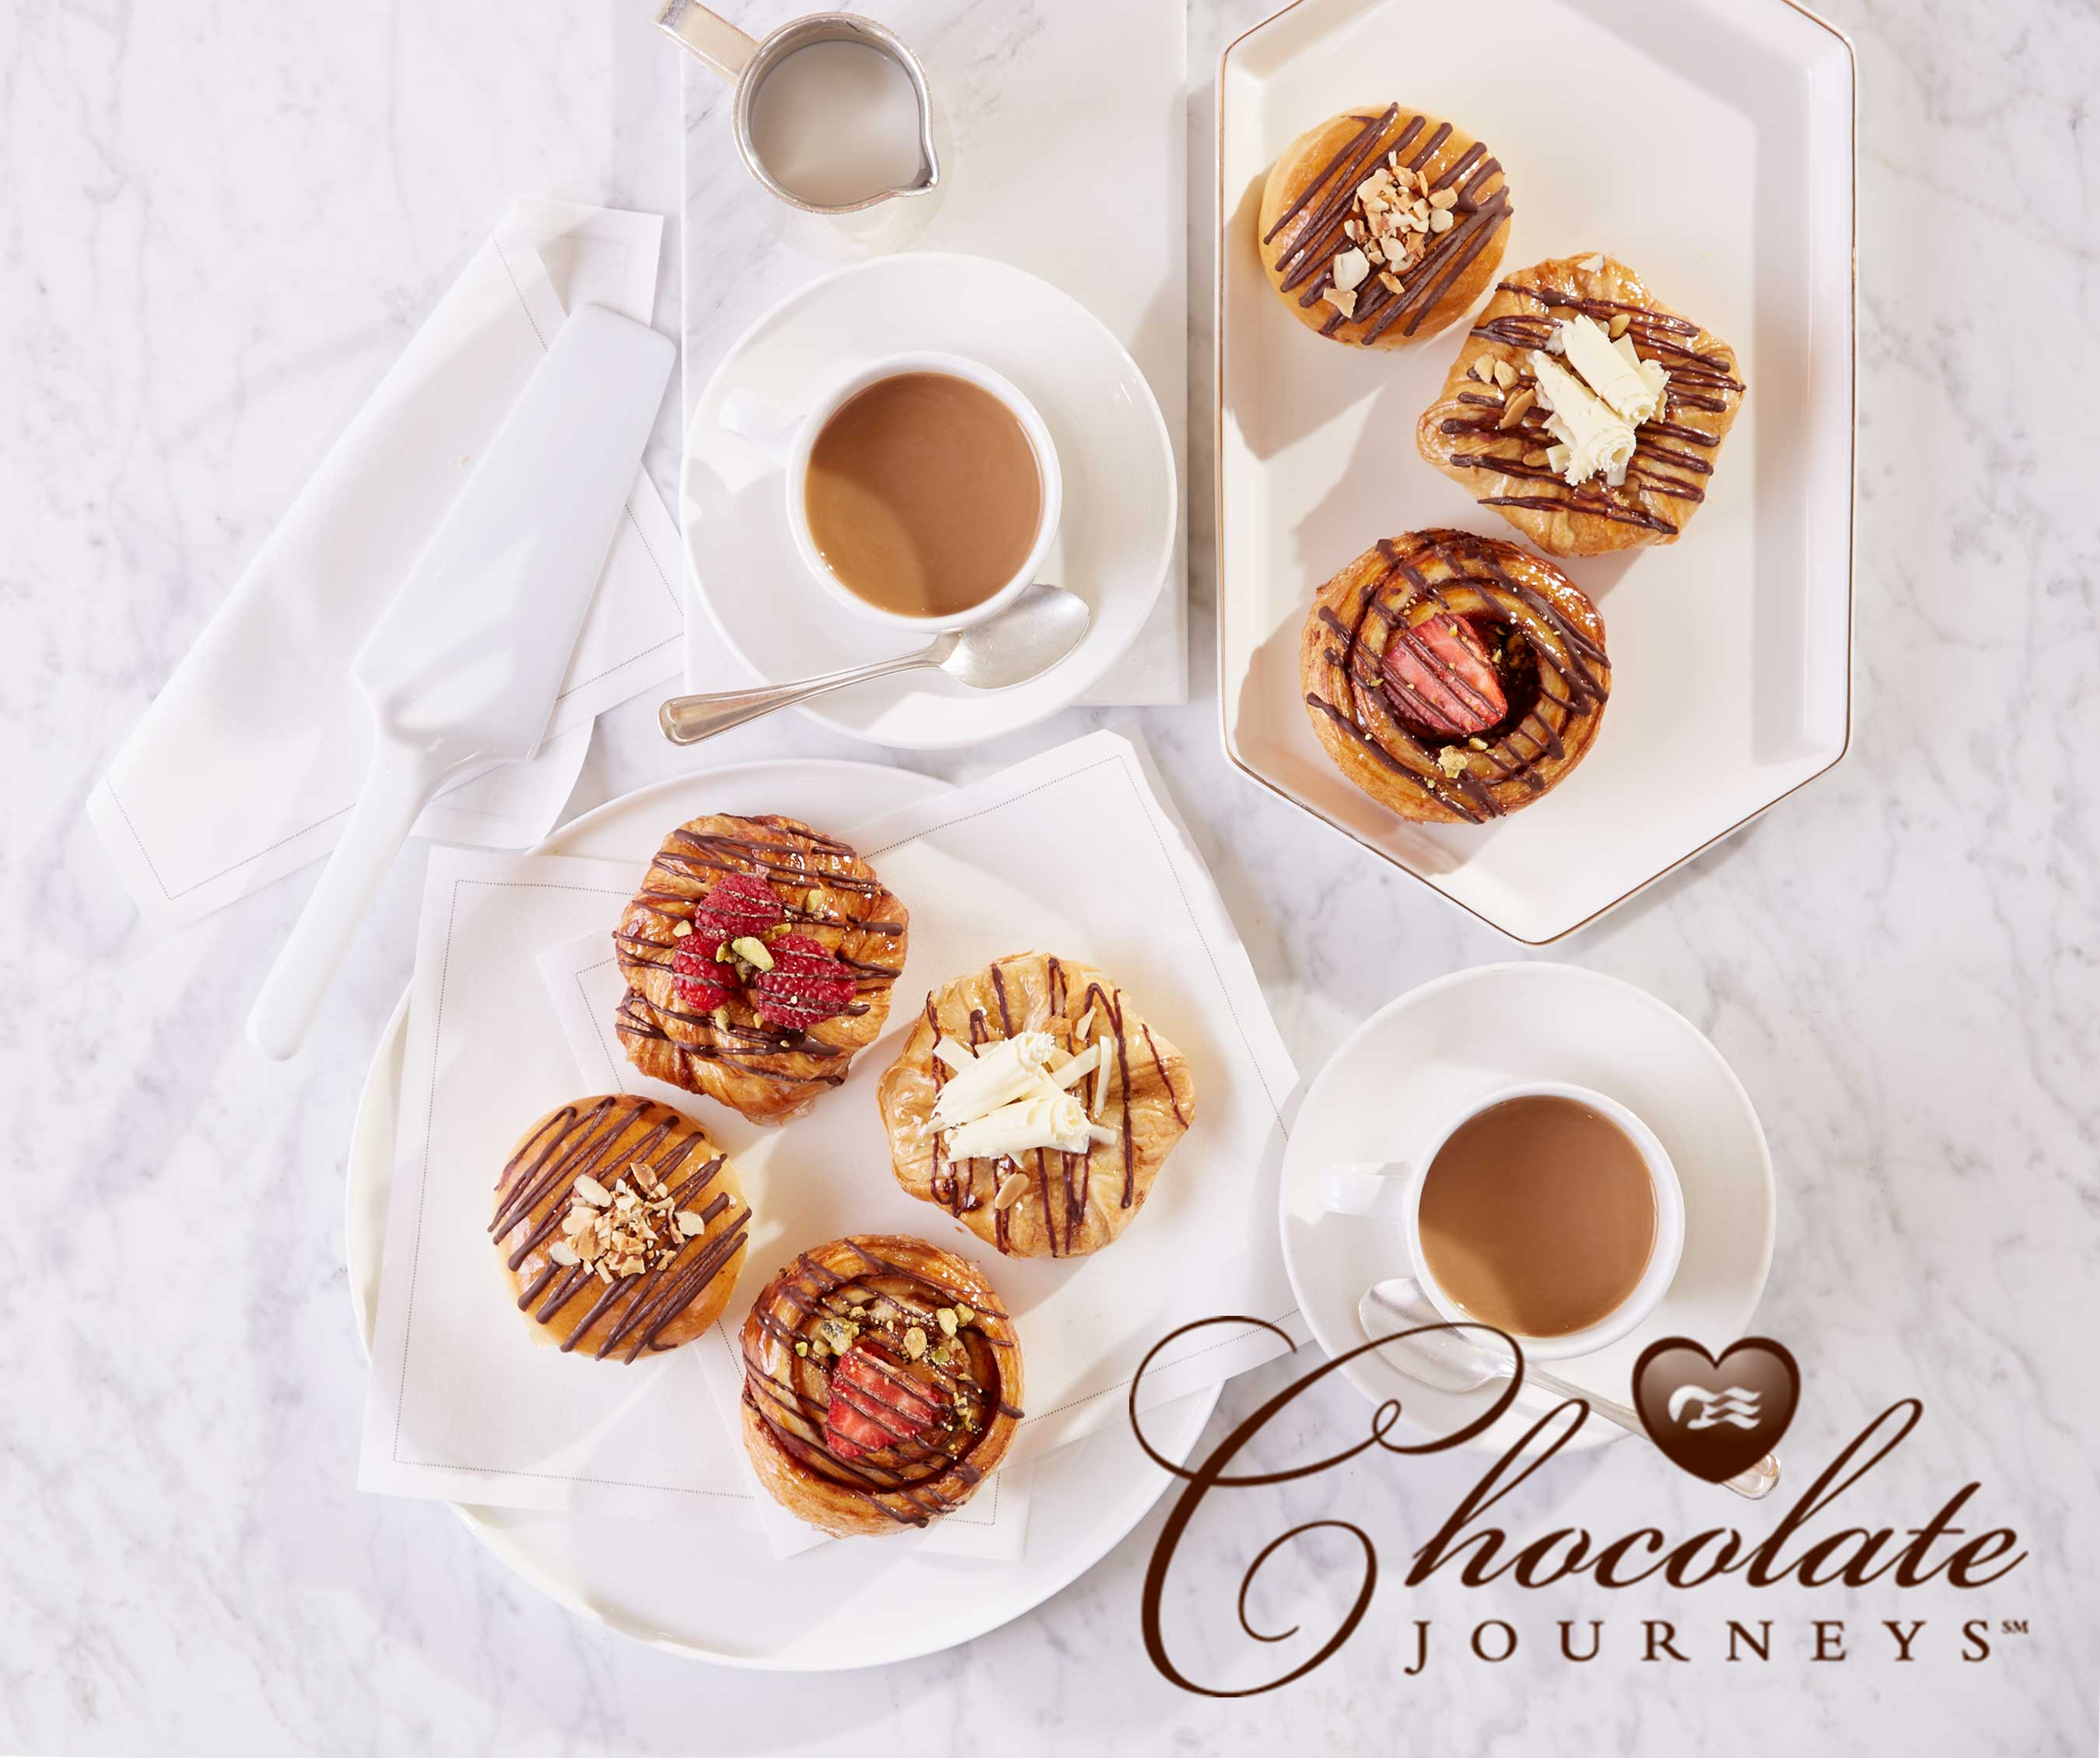 """Princess Cruises sweetens """"Chocolate Journeys"""" with new indulgences from Master Chocolatier Chef Norman Love."""